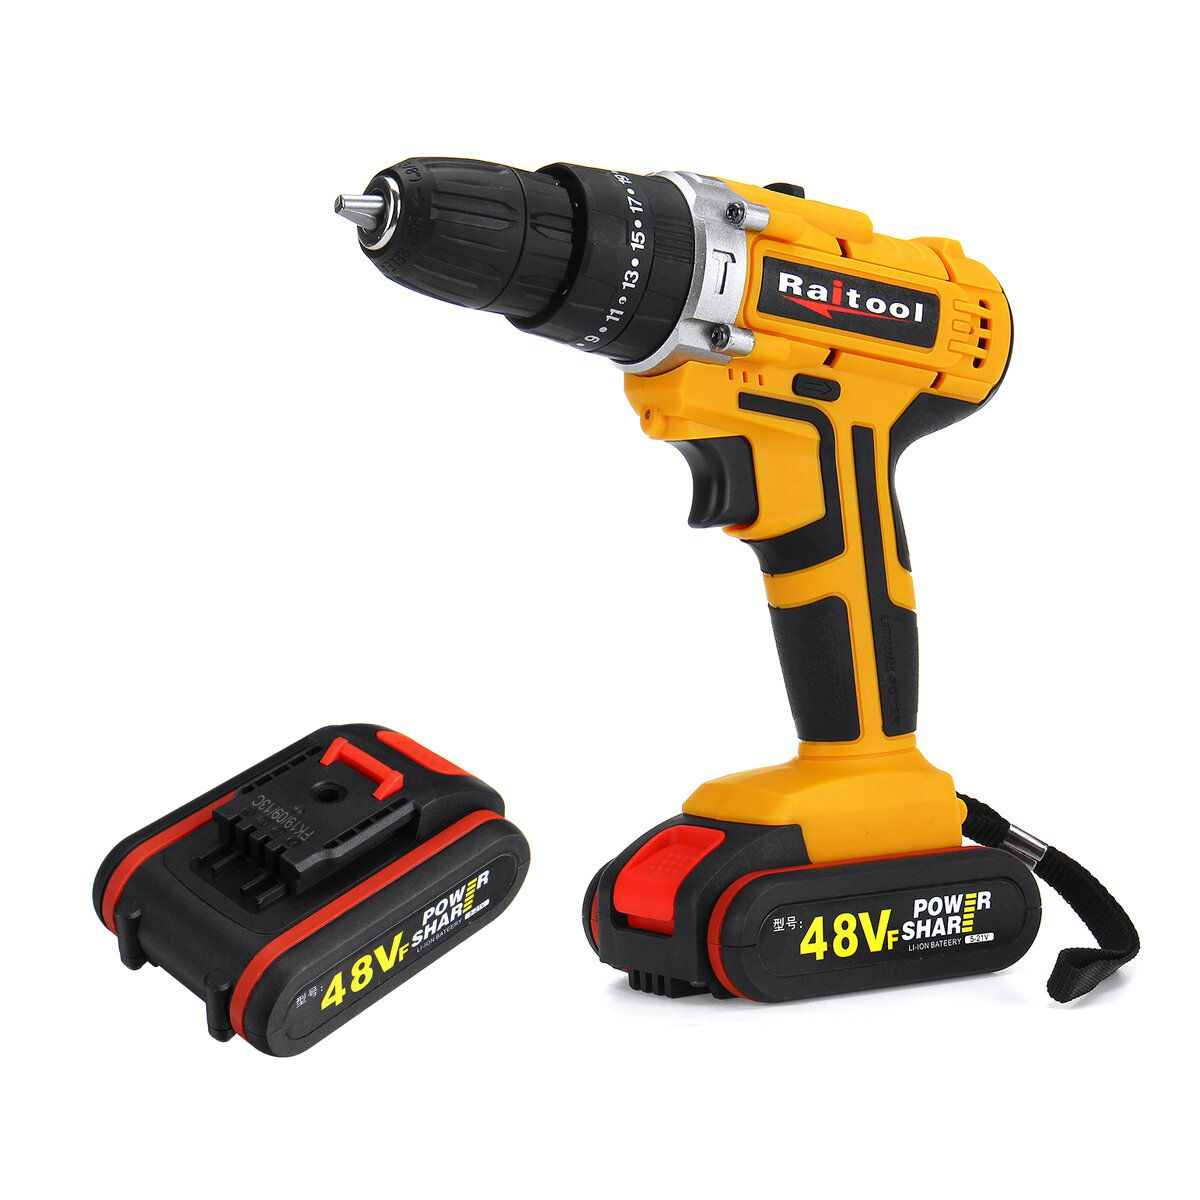 Raitool 48VF Cordless Electric Impact Drill Rechargeable 3/8 inch Drill Screwdriver W/ 1 or 2 Li ion Battery